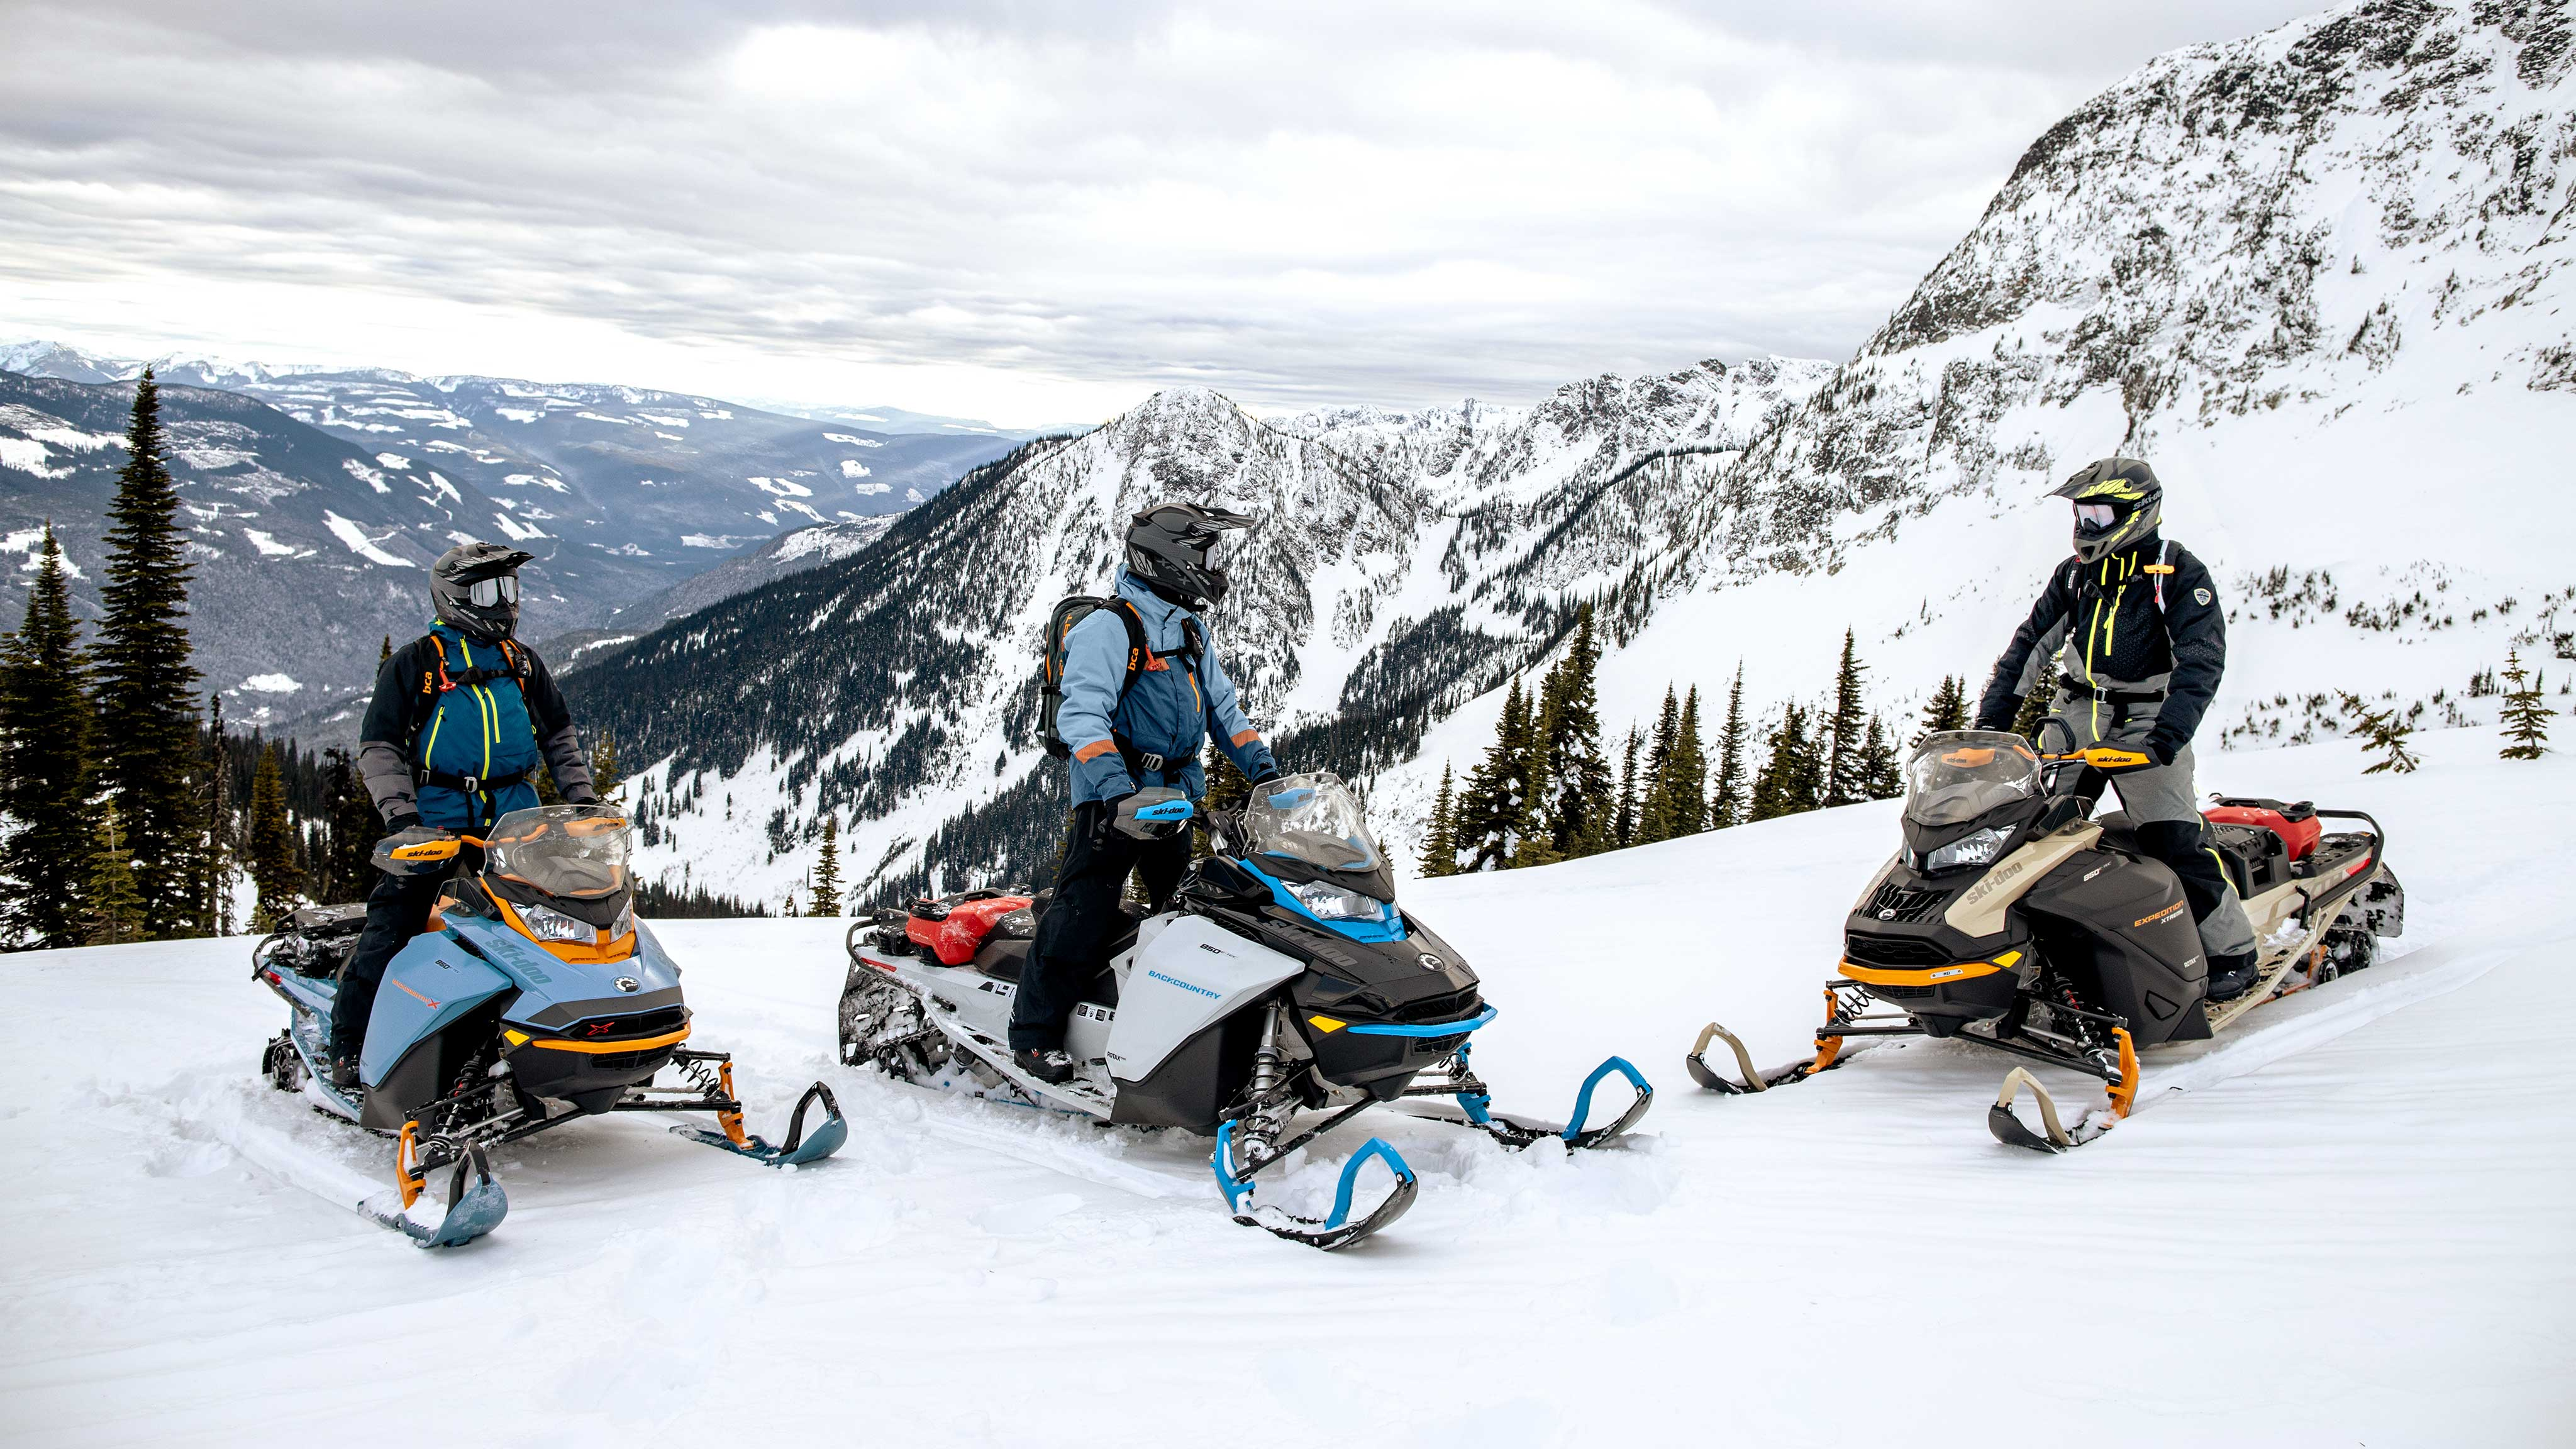 3 riders enjoying their 2022 Ski-Doo Backcountry